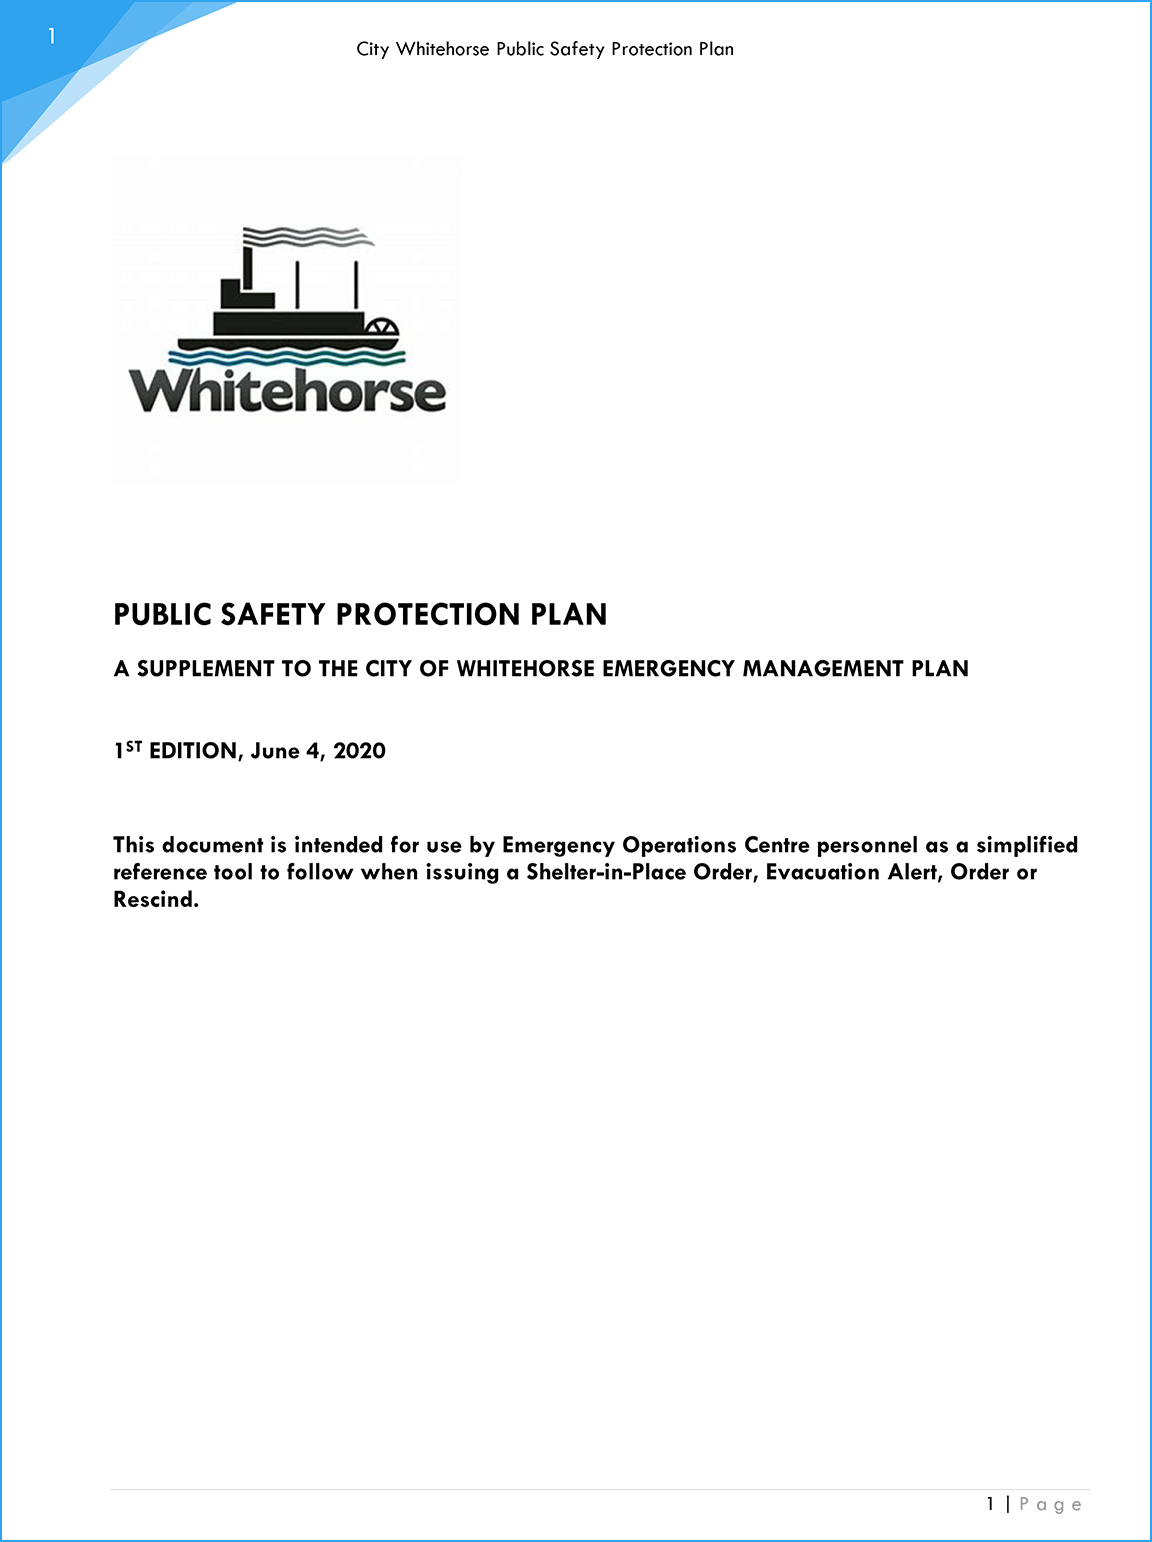 Public Safety Protection Plan Cover